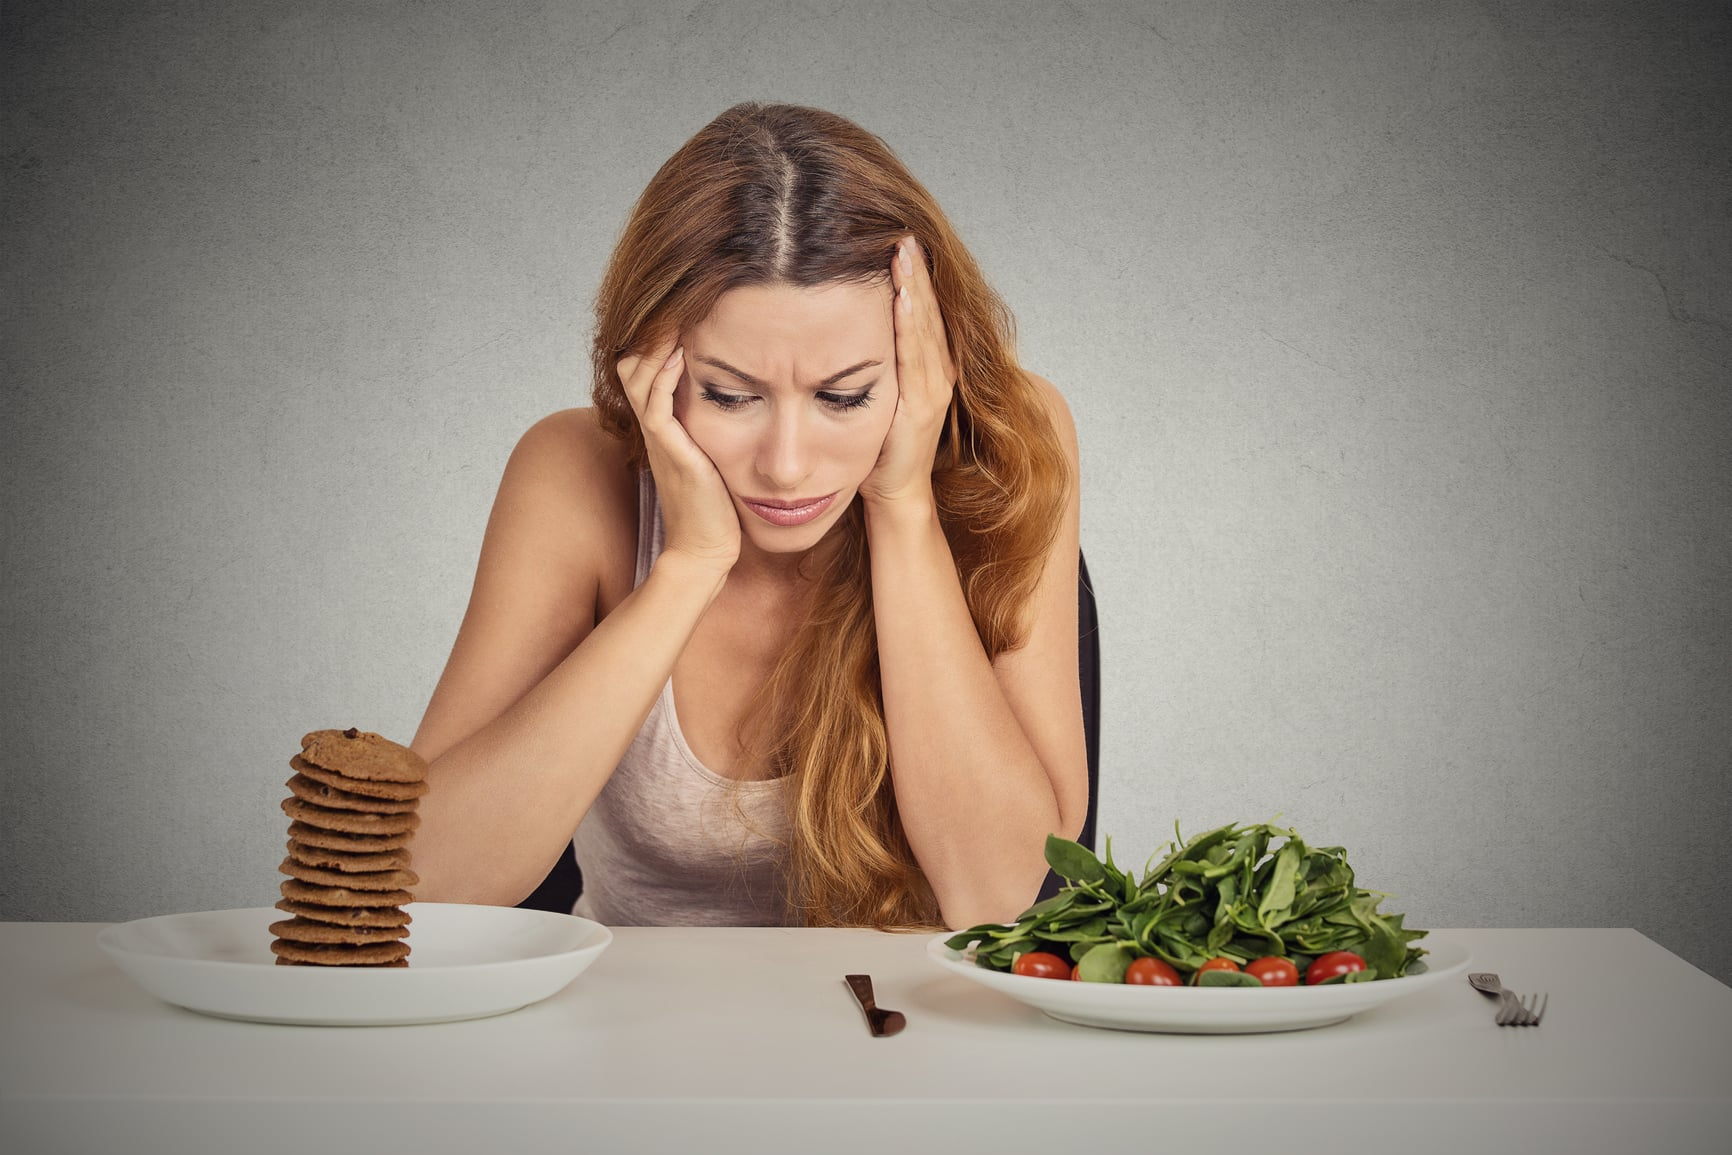 Young woman tired of diet restrictions deciding whether to eat healthy food or sweet cookies she is craving sitting at table isolated grey background. Human face expression emotion. Nutrition concept